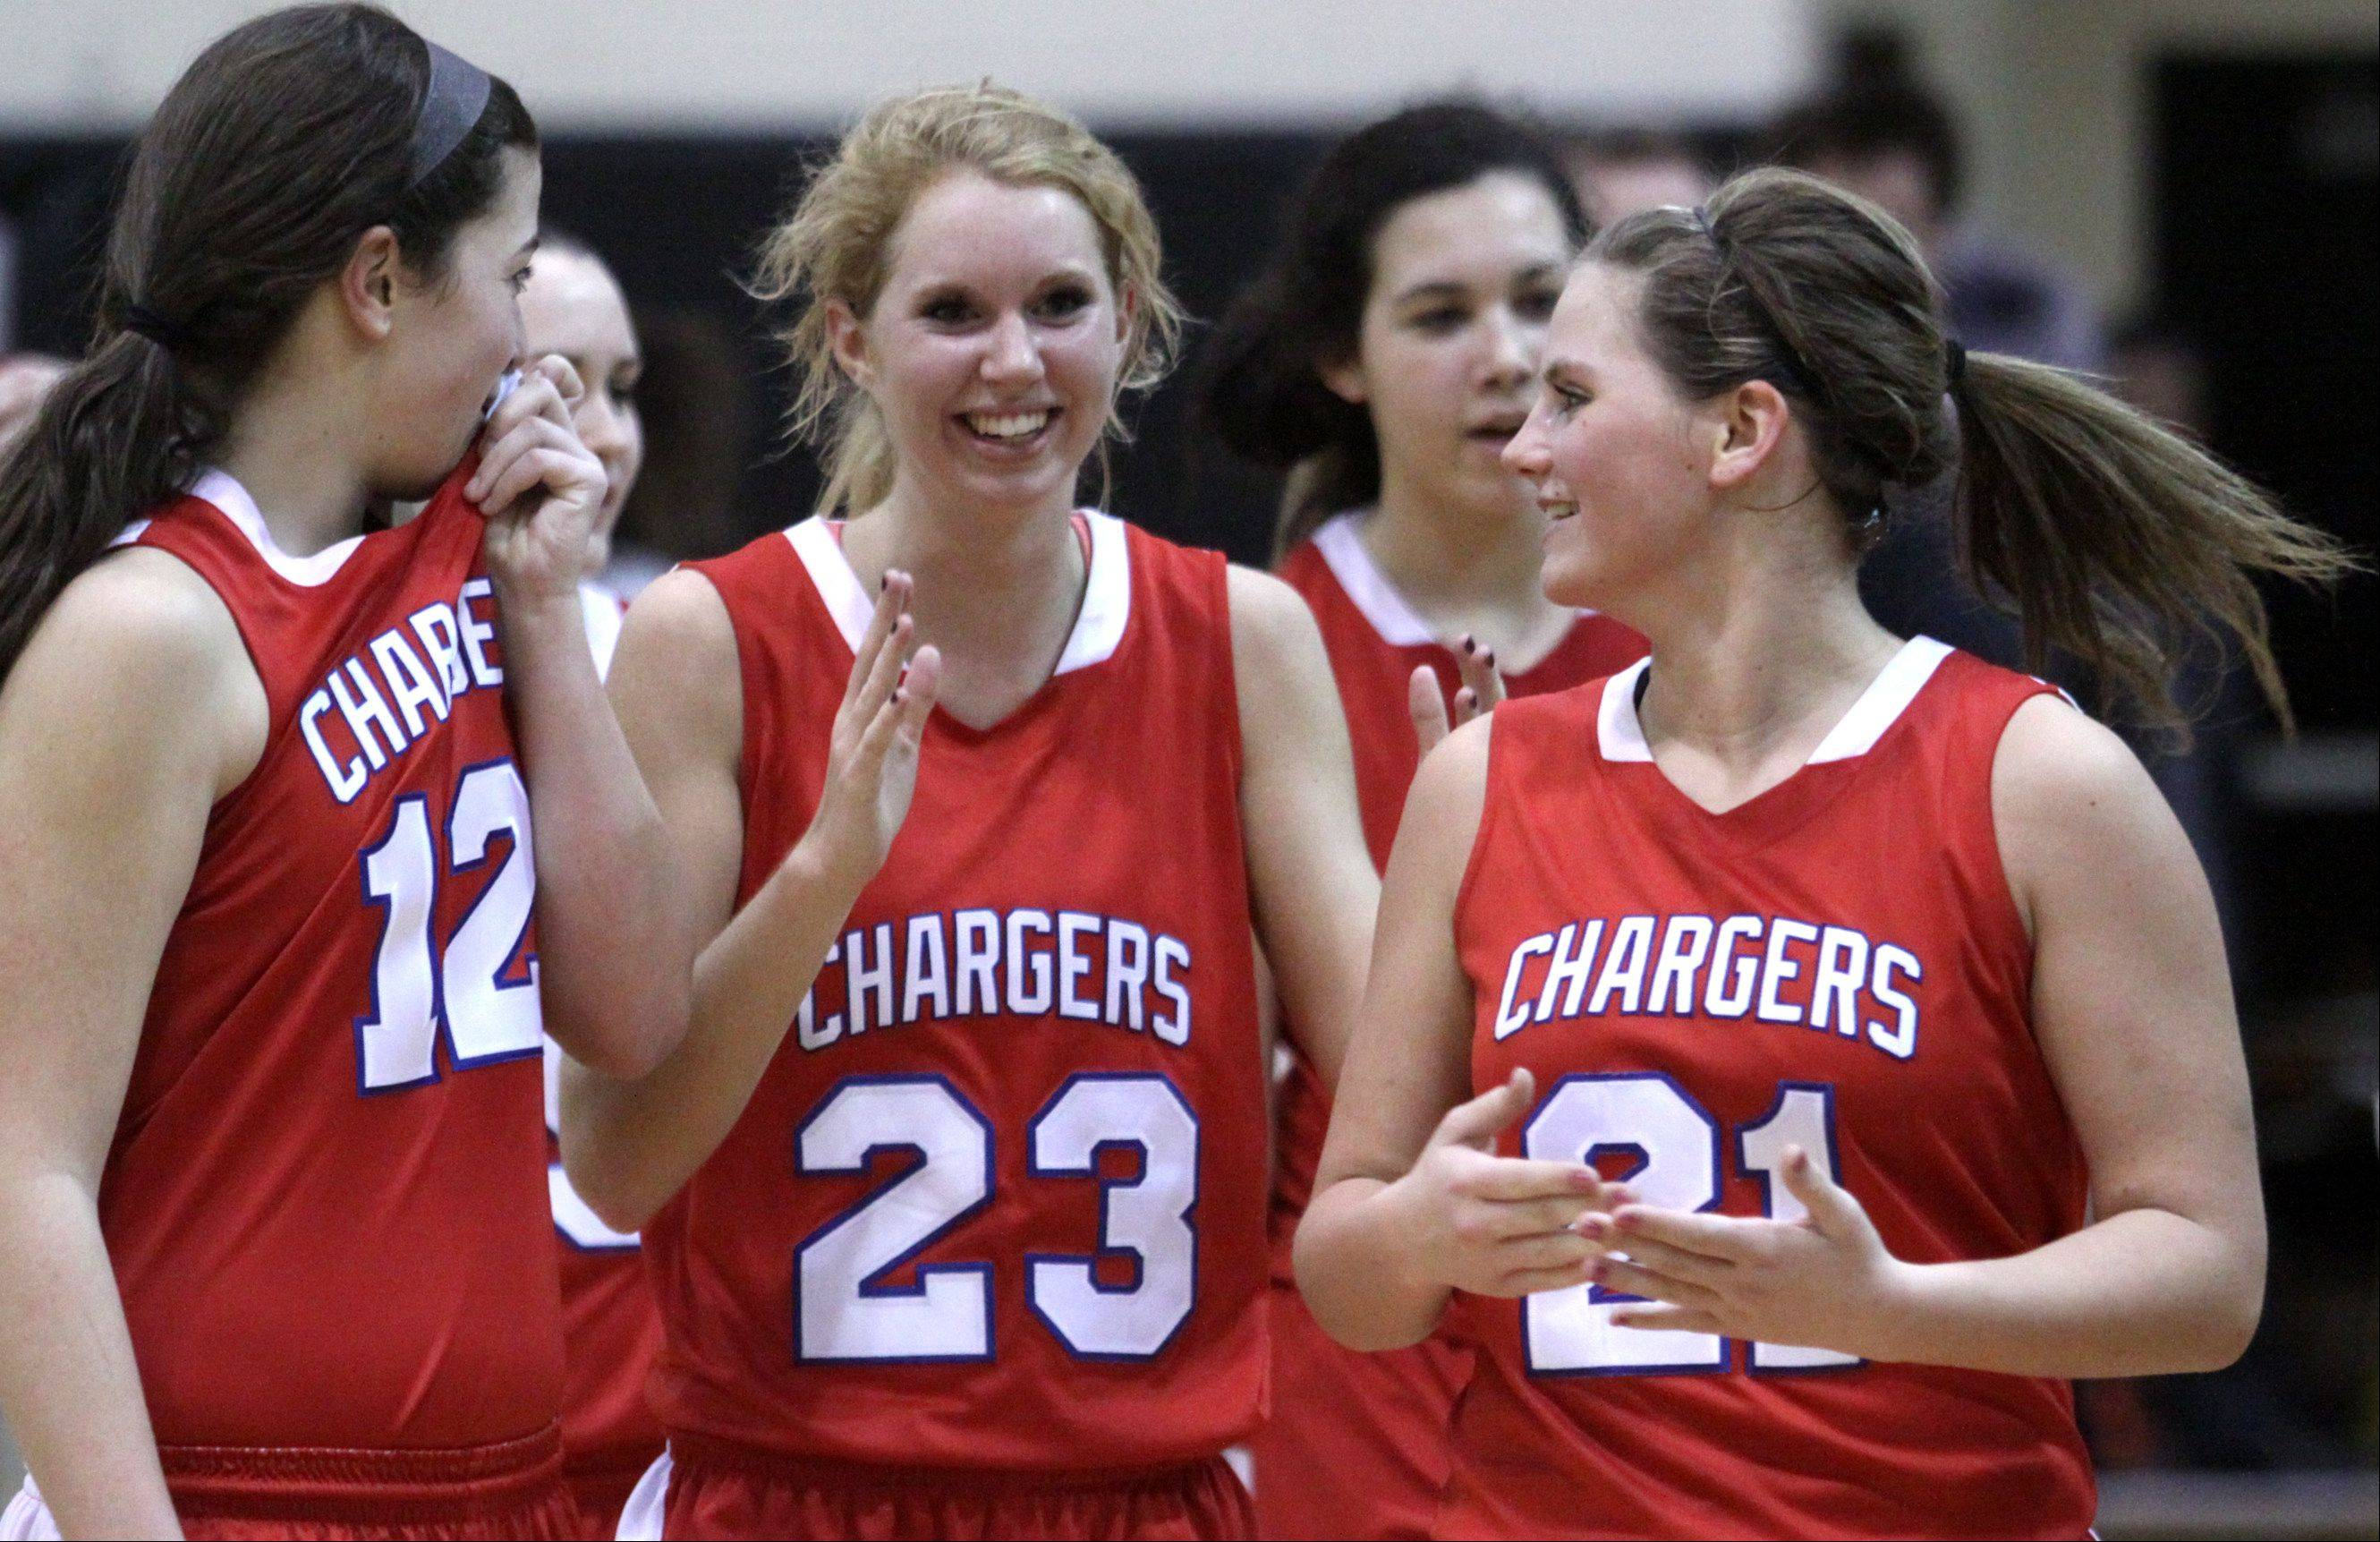 From left, Dundee-Crown�s Lauren Lococo, Jillian Weichmann, and Stephanie Magsamen are all smiles after beating Jacobs.